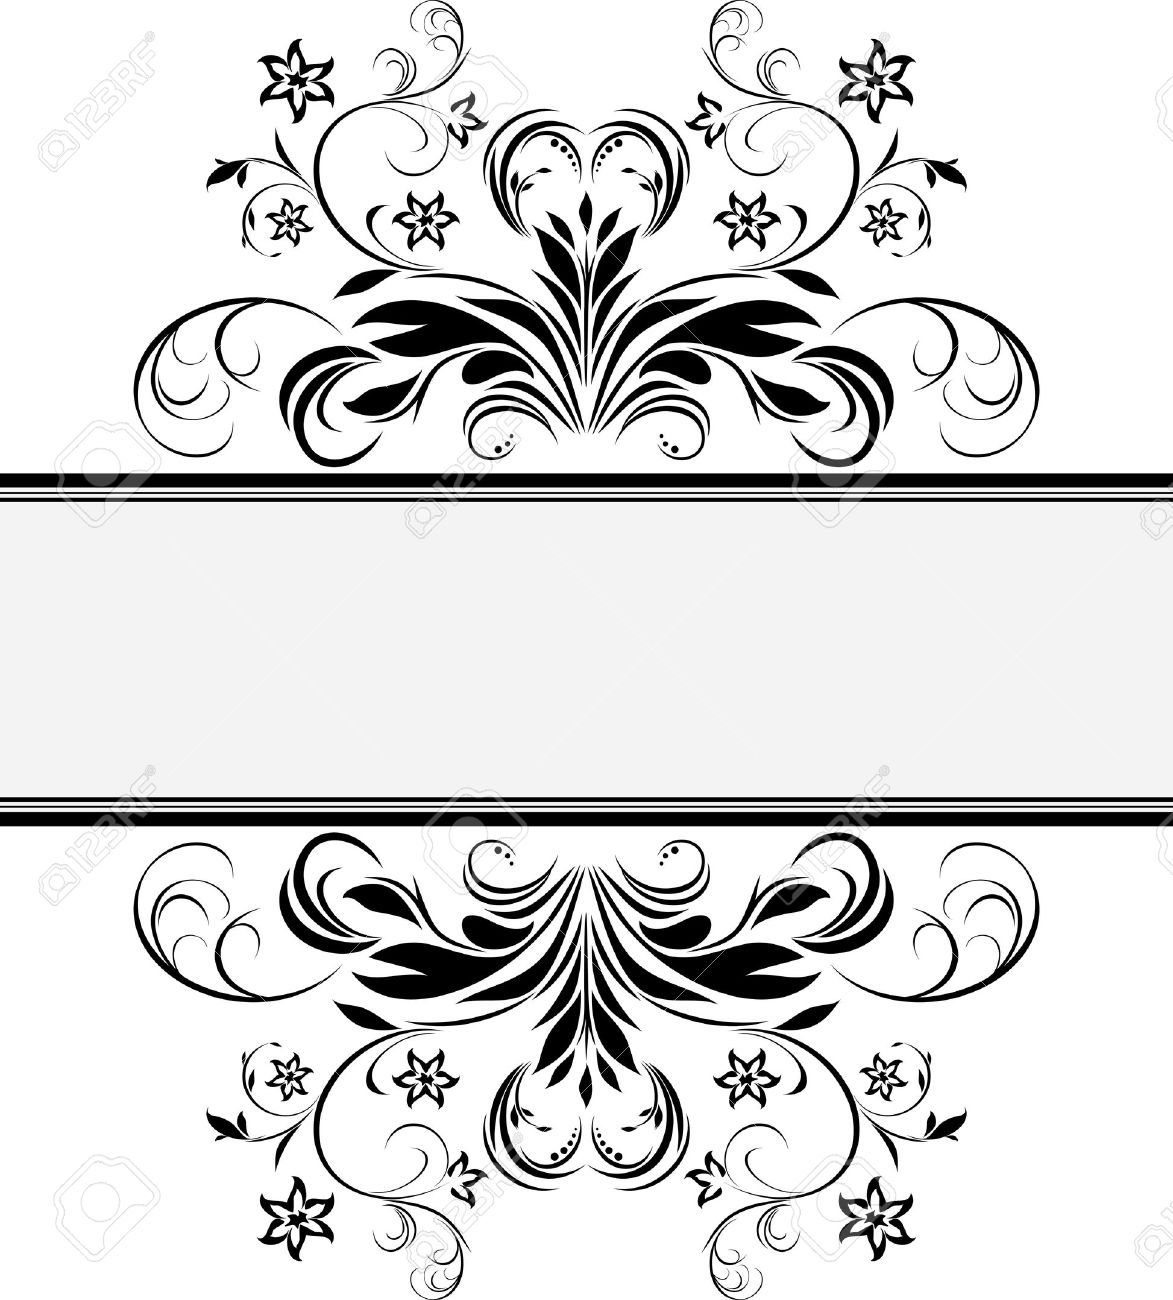 Decorative Retro Frame For Design Royalty Free Cliparts, Vectors.